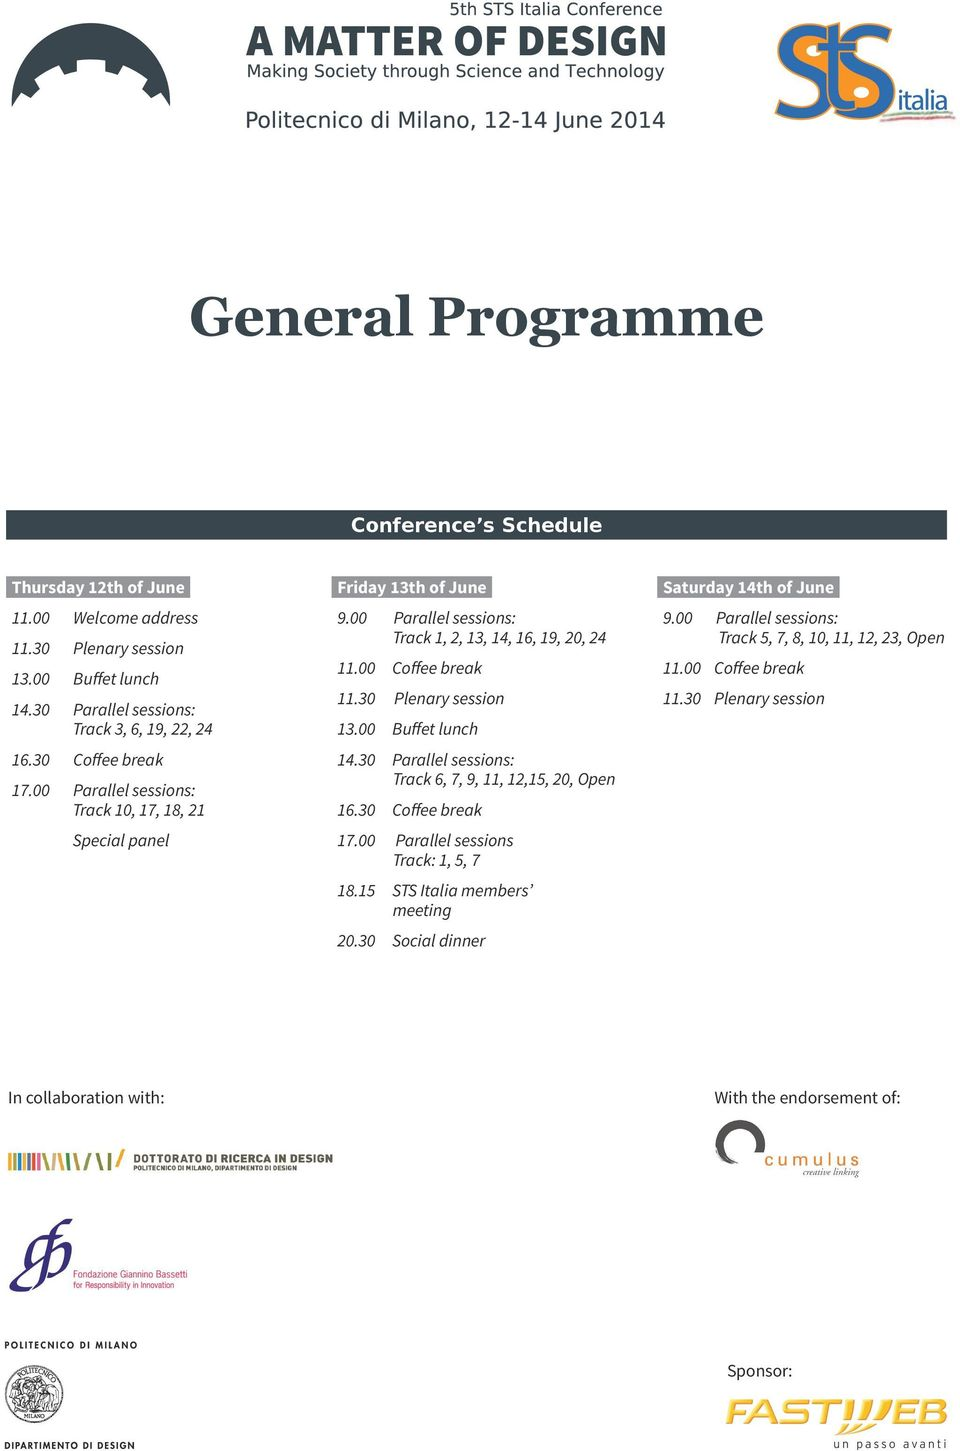 30 Plenary session 13.00 Buffet lunch 14.30 Parallel sessions: Track 6, 7, 9, 11, 12,15, 20, Open 16.30 Coffee break 17.00 Parallel sessions Track: 1, 5, 7 18.